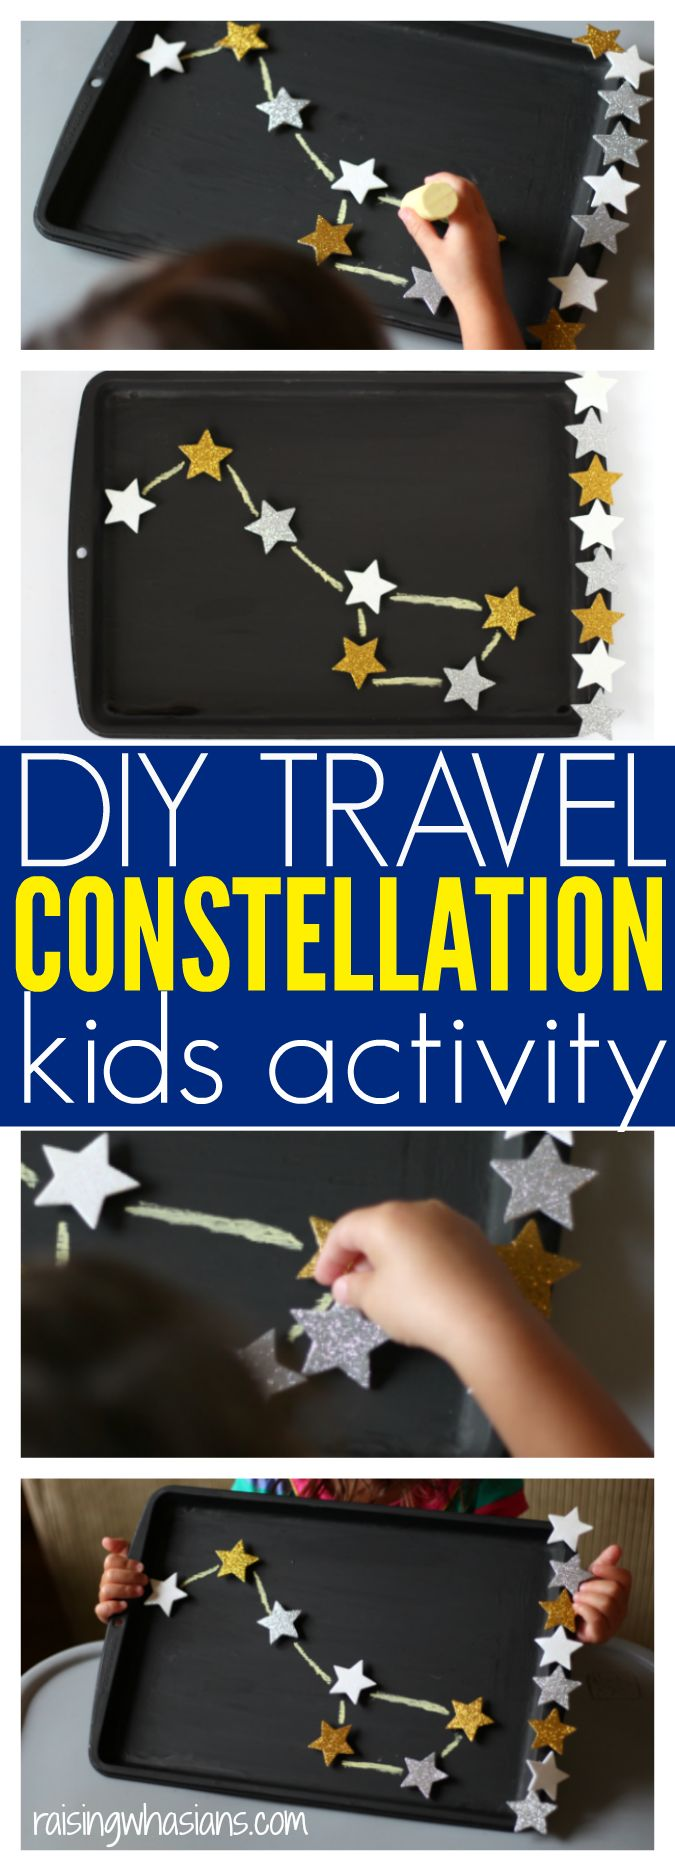 DIY Travel Constellation Activity for Kids | Make your own kids constellation activity, perfect for family travel! Fun motor skills activity for toddlers